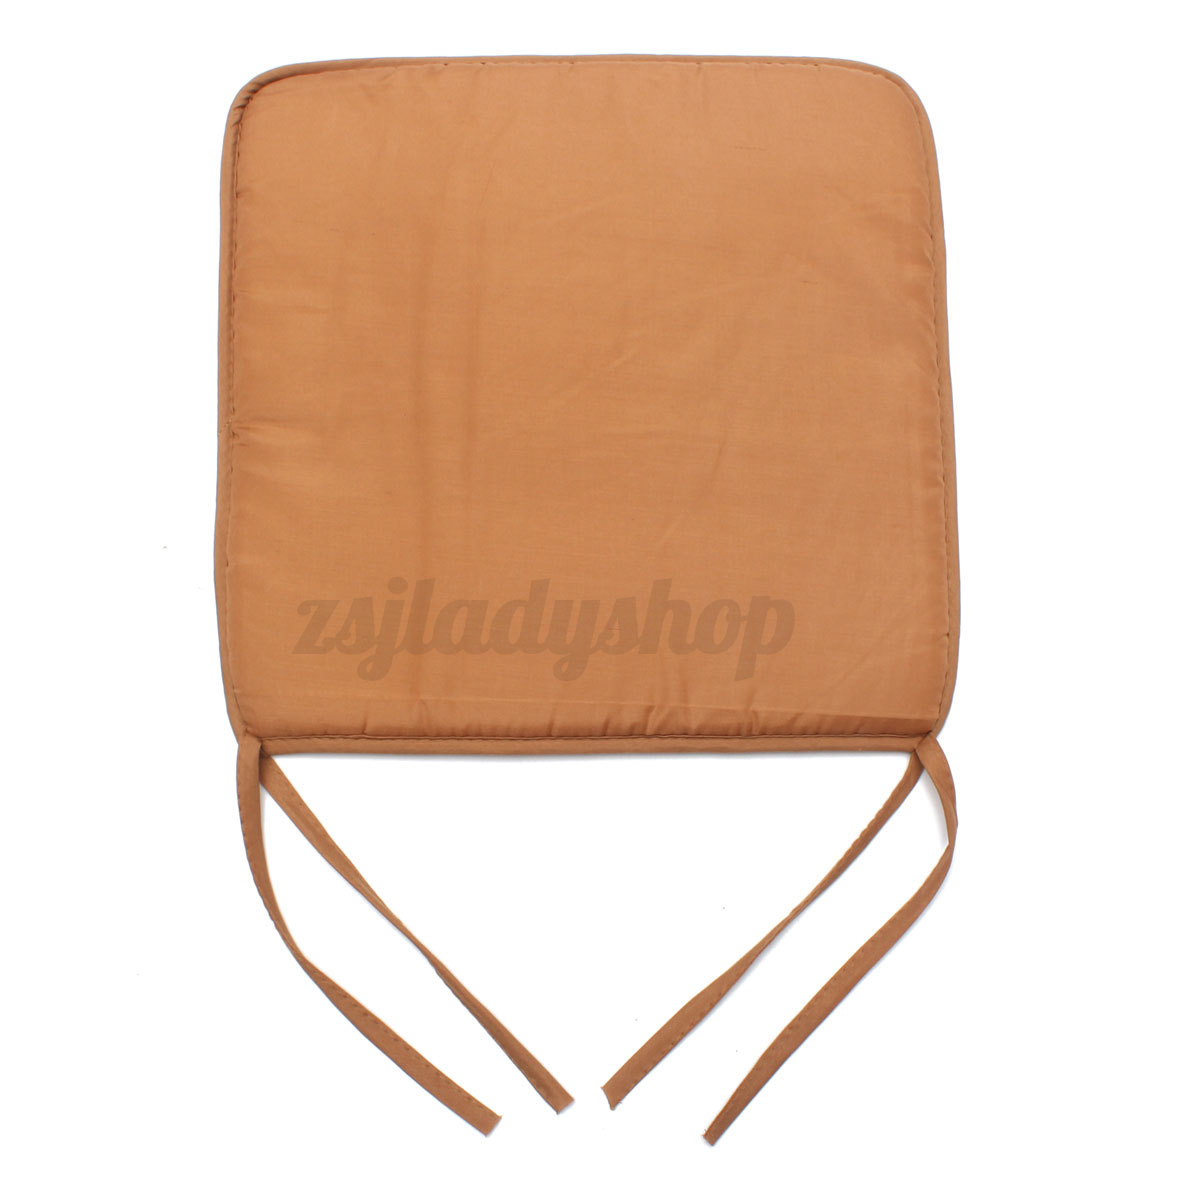 patio chair pads baby high walmart soft cushion seat removable cover dining home